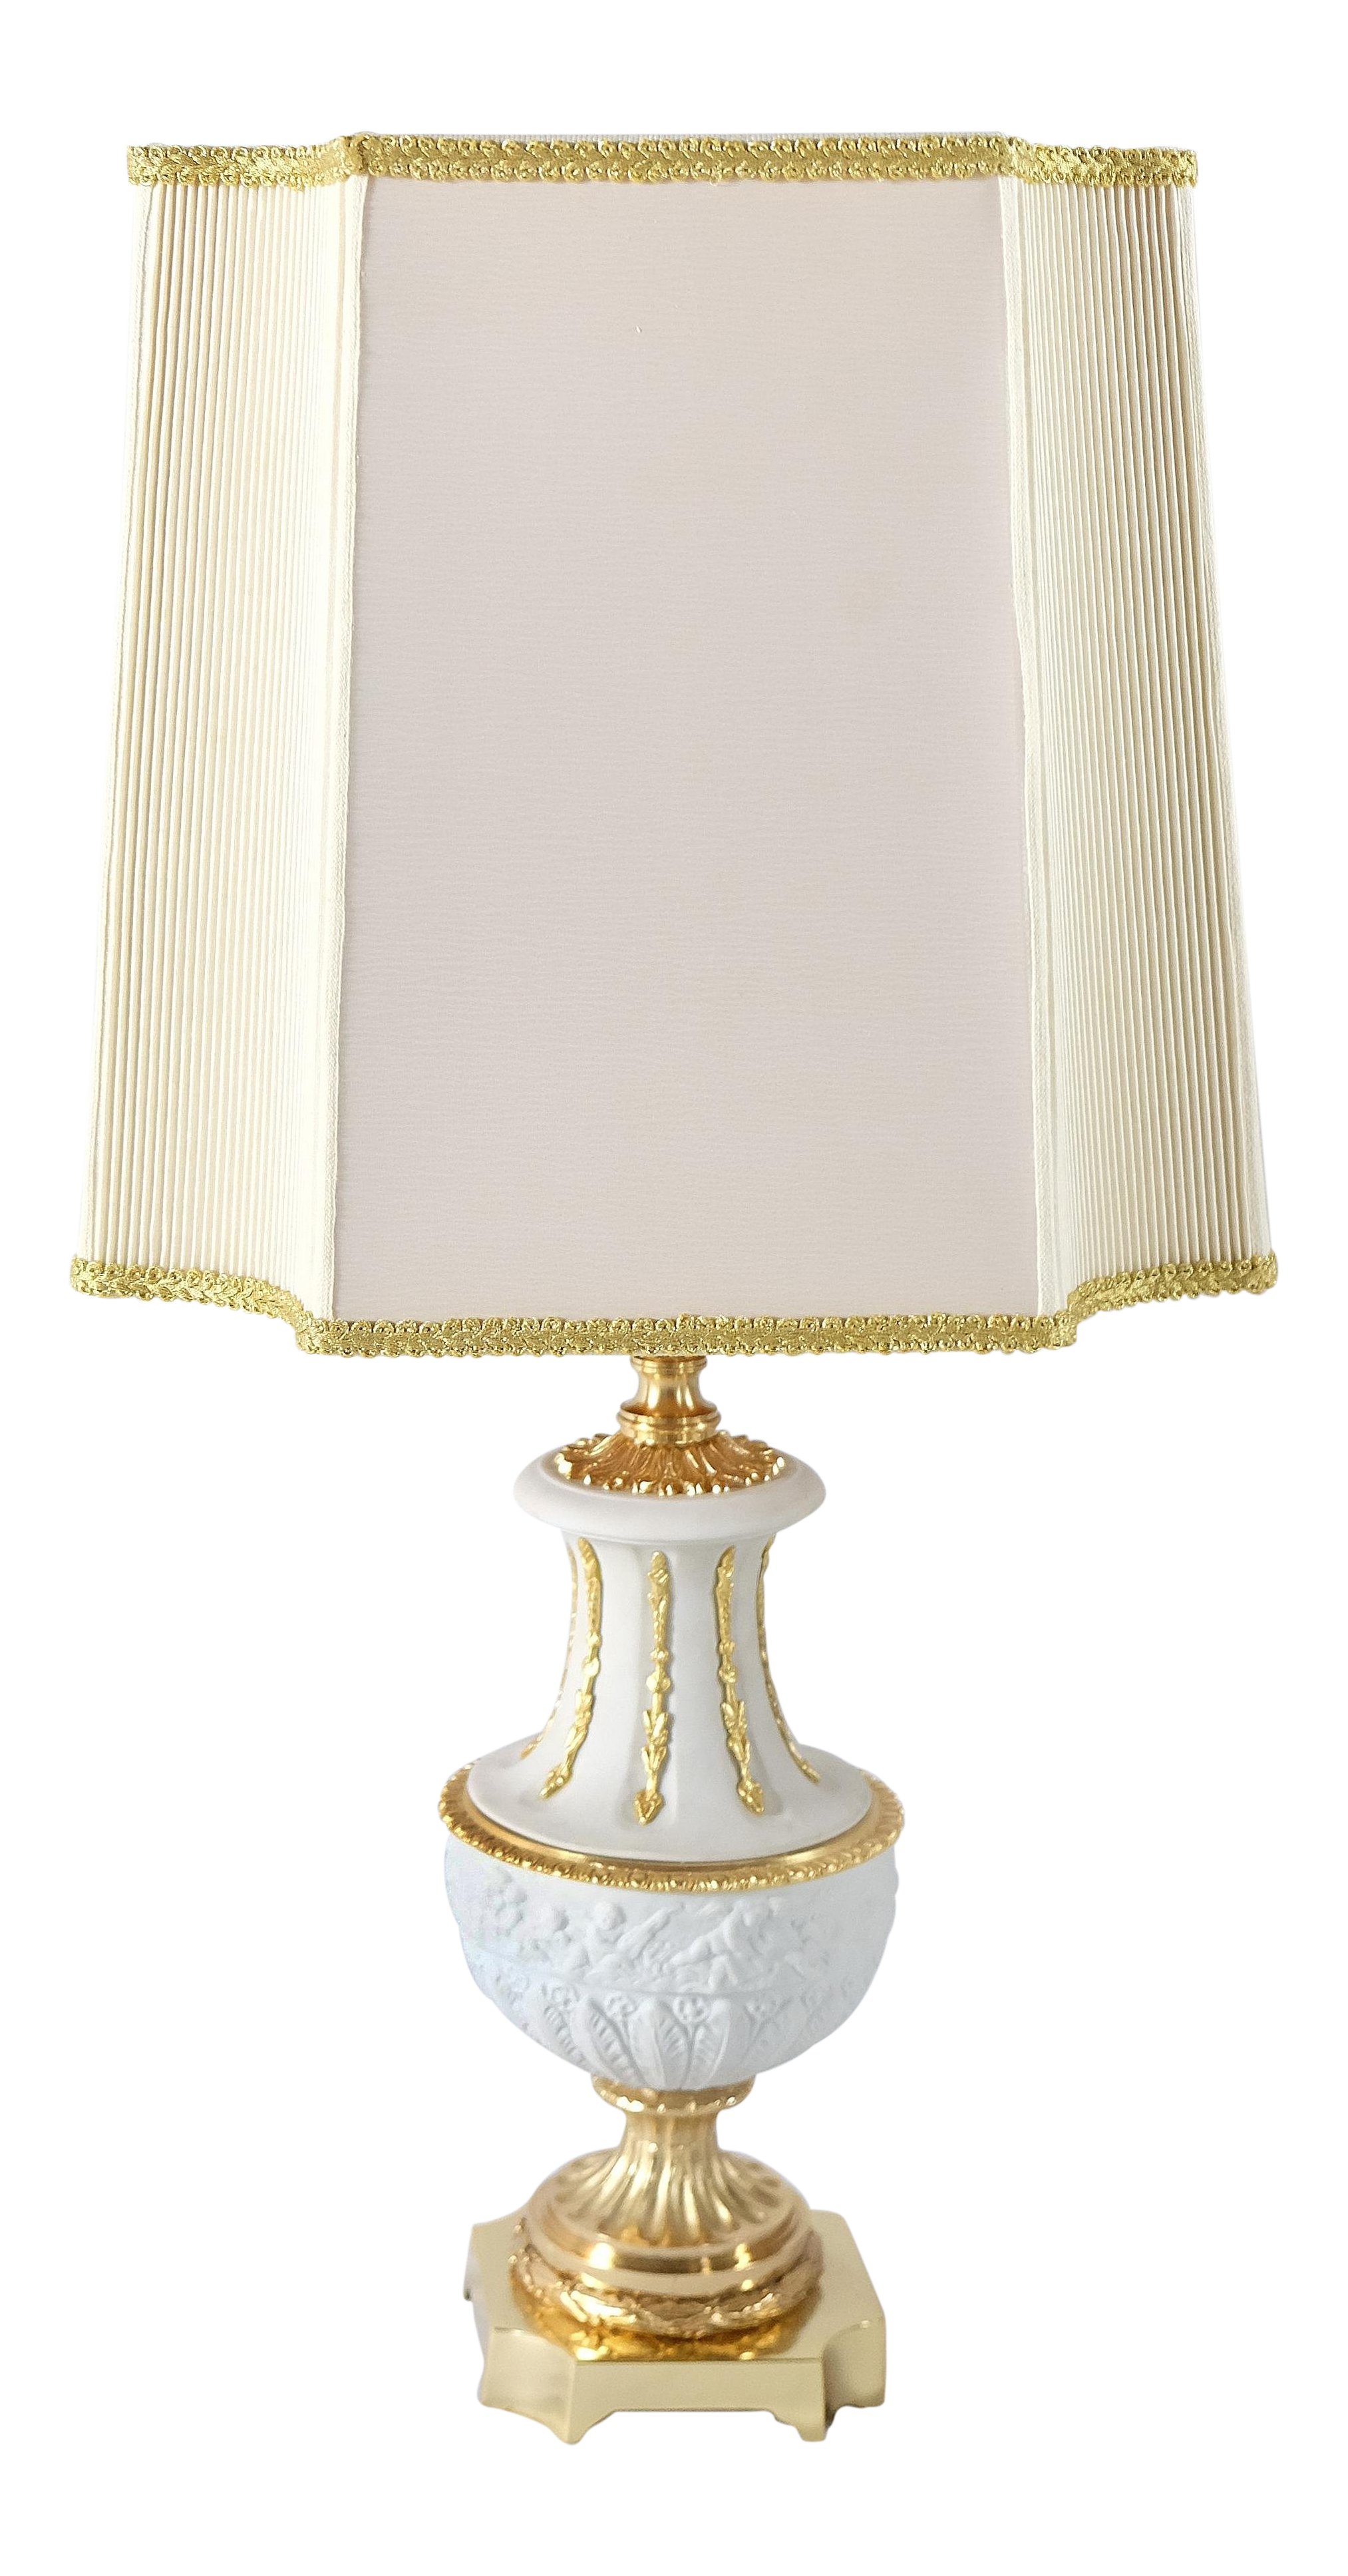 Delicieux Italian Classically Designed Porcelain Table Lamp By Mangani For Sale